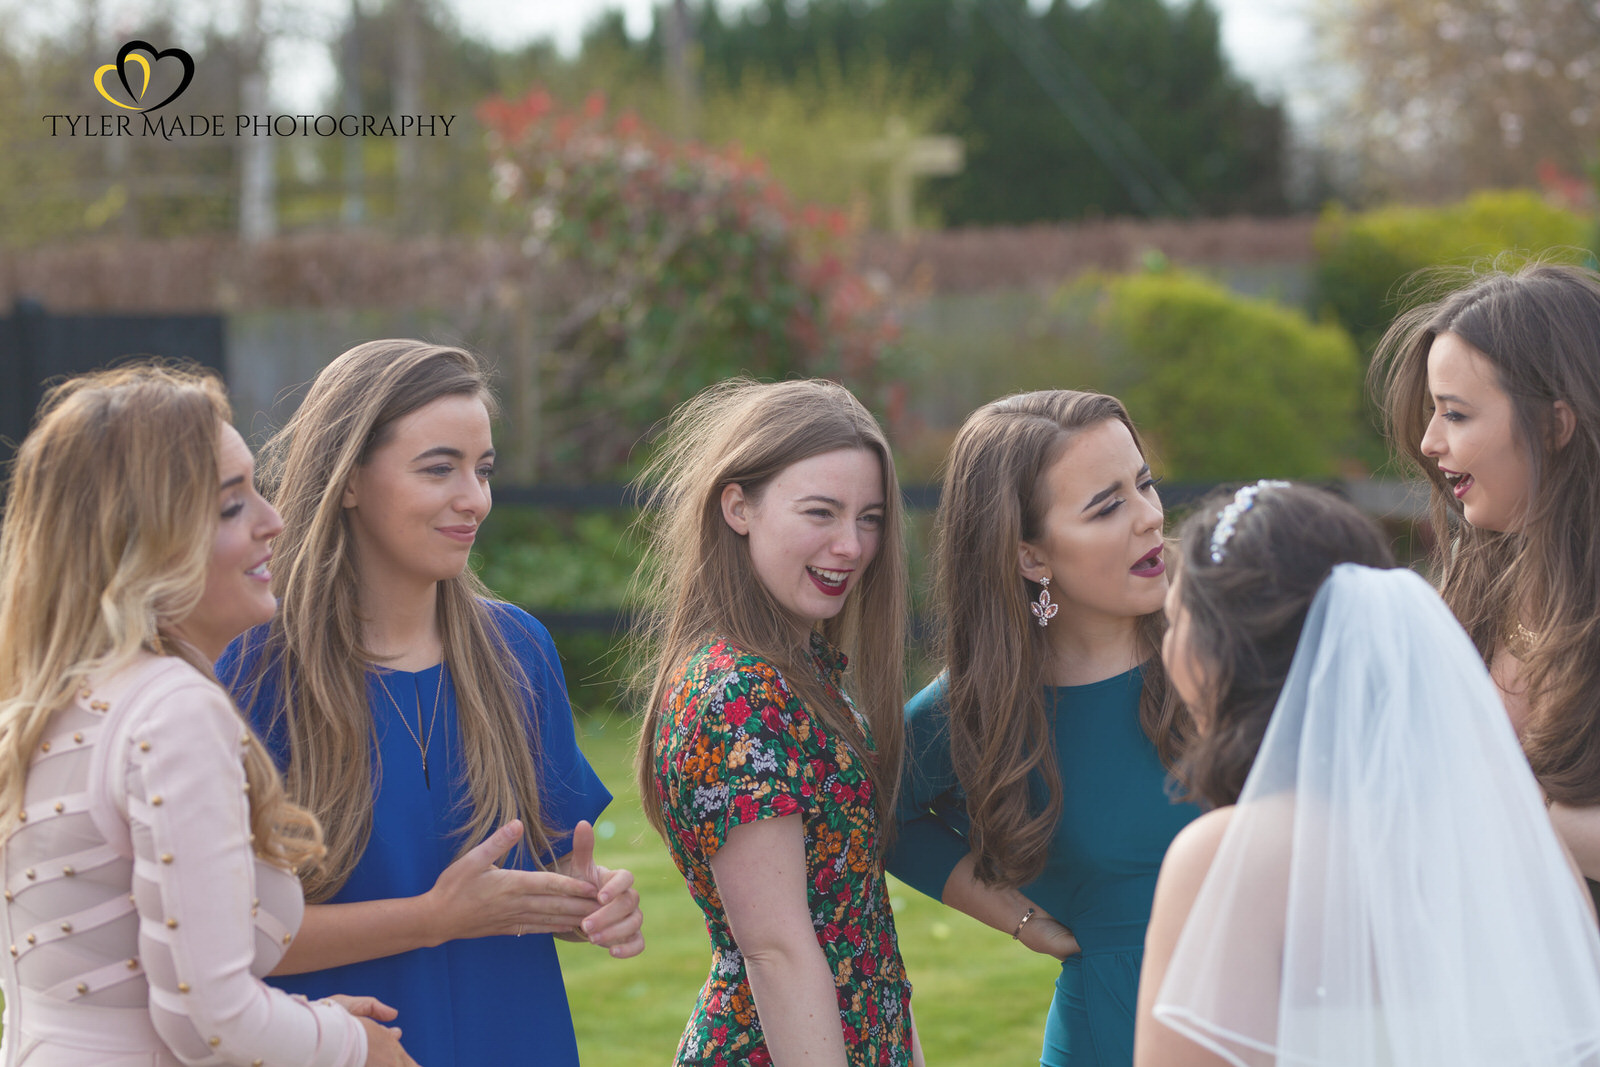 Wedding Guests chatting The Barn, Upchurch Wedding Venue by Kent Wedding Photographer Tyler Made Photography